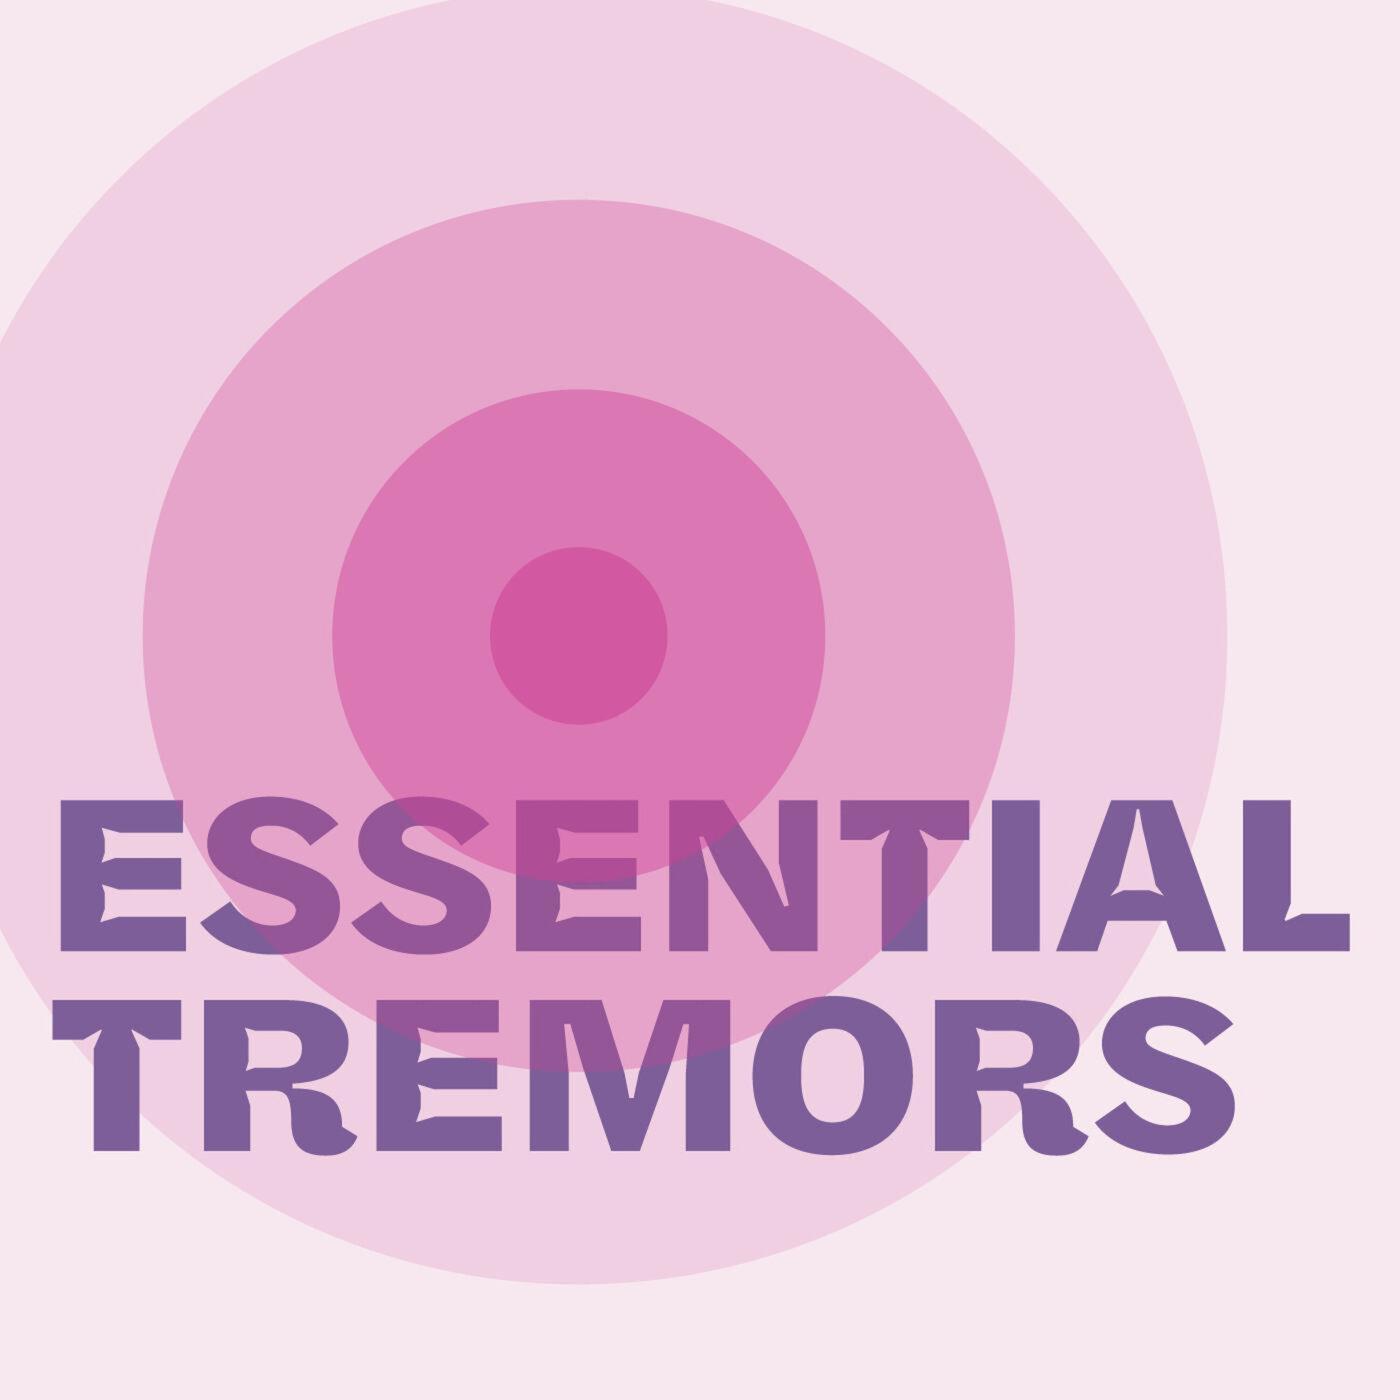 Essential Tremors